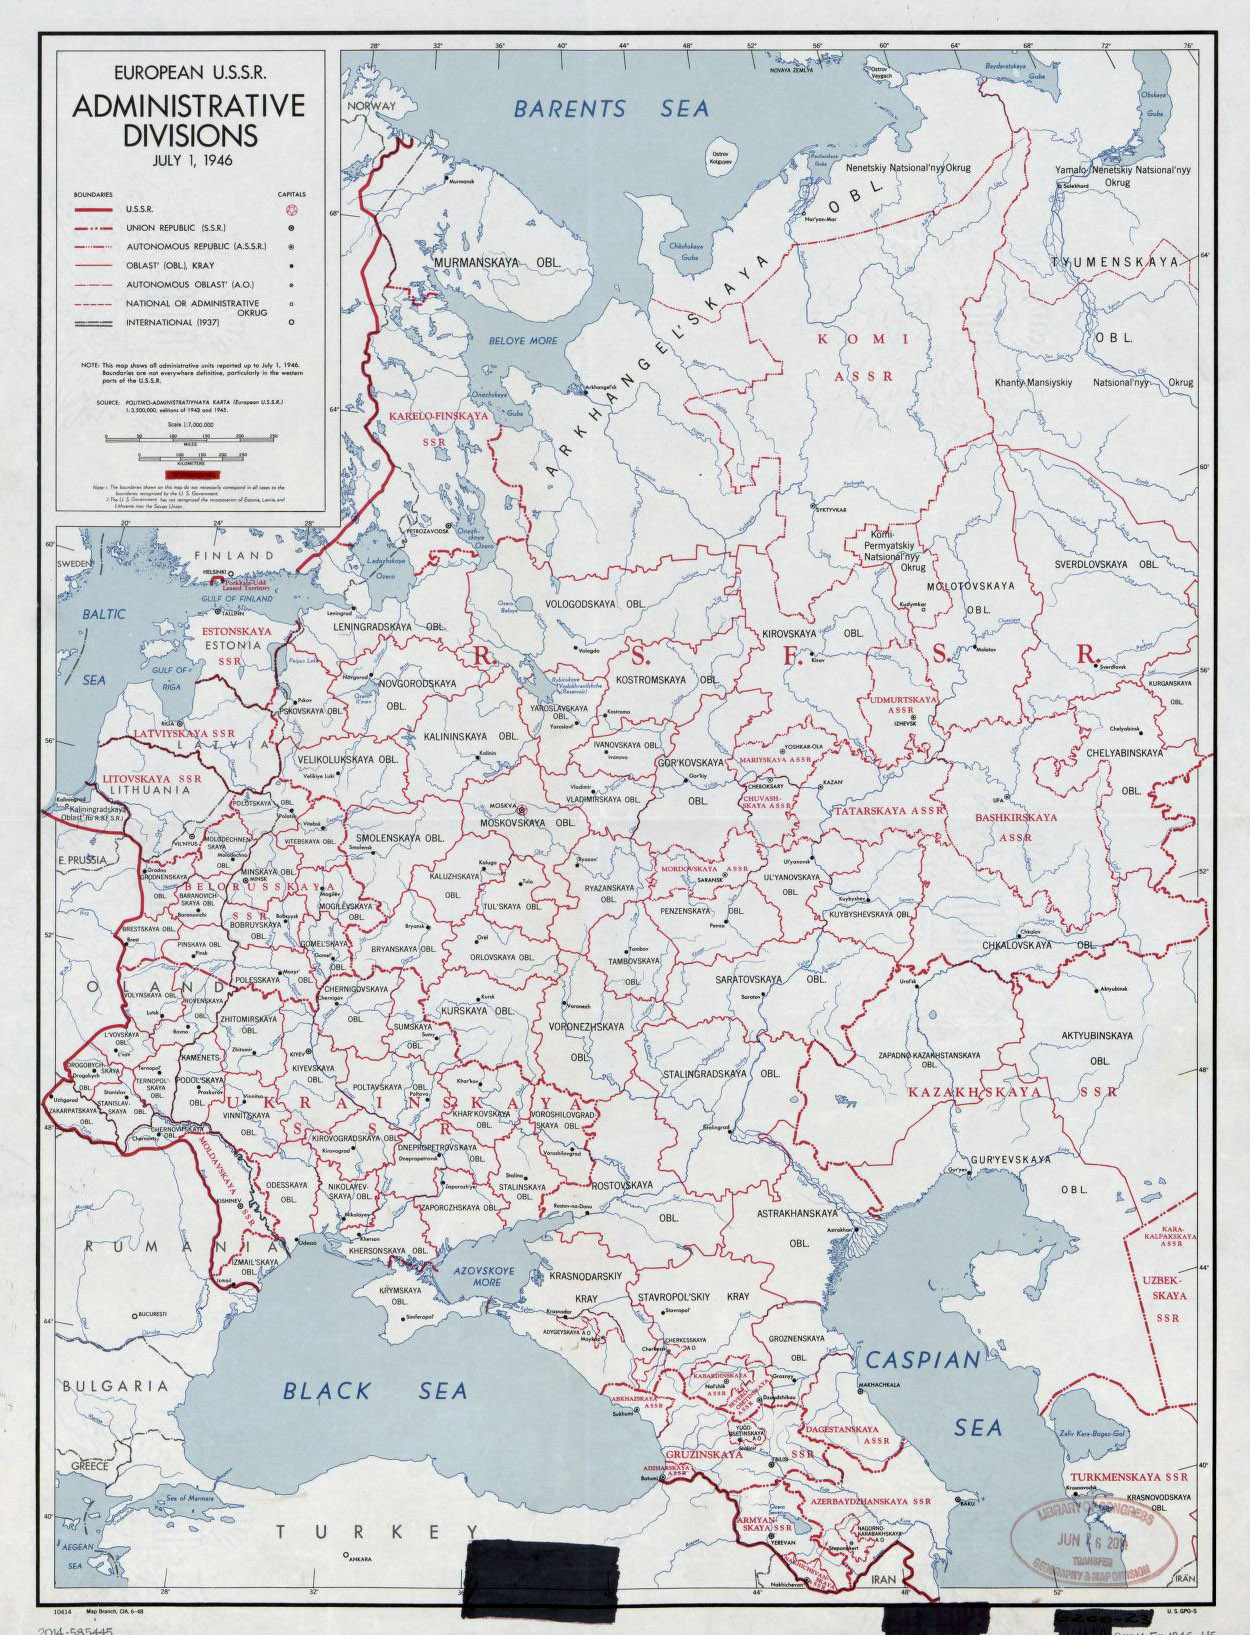 Detailed old administrative divisions map of European U.S.S.R. ...